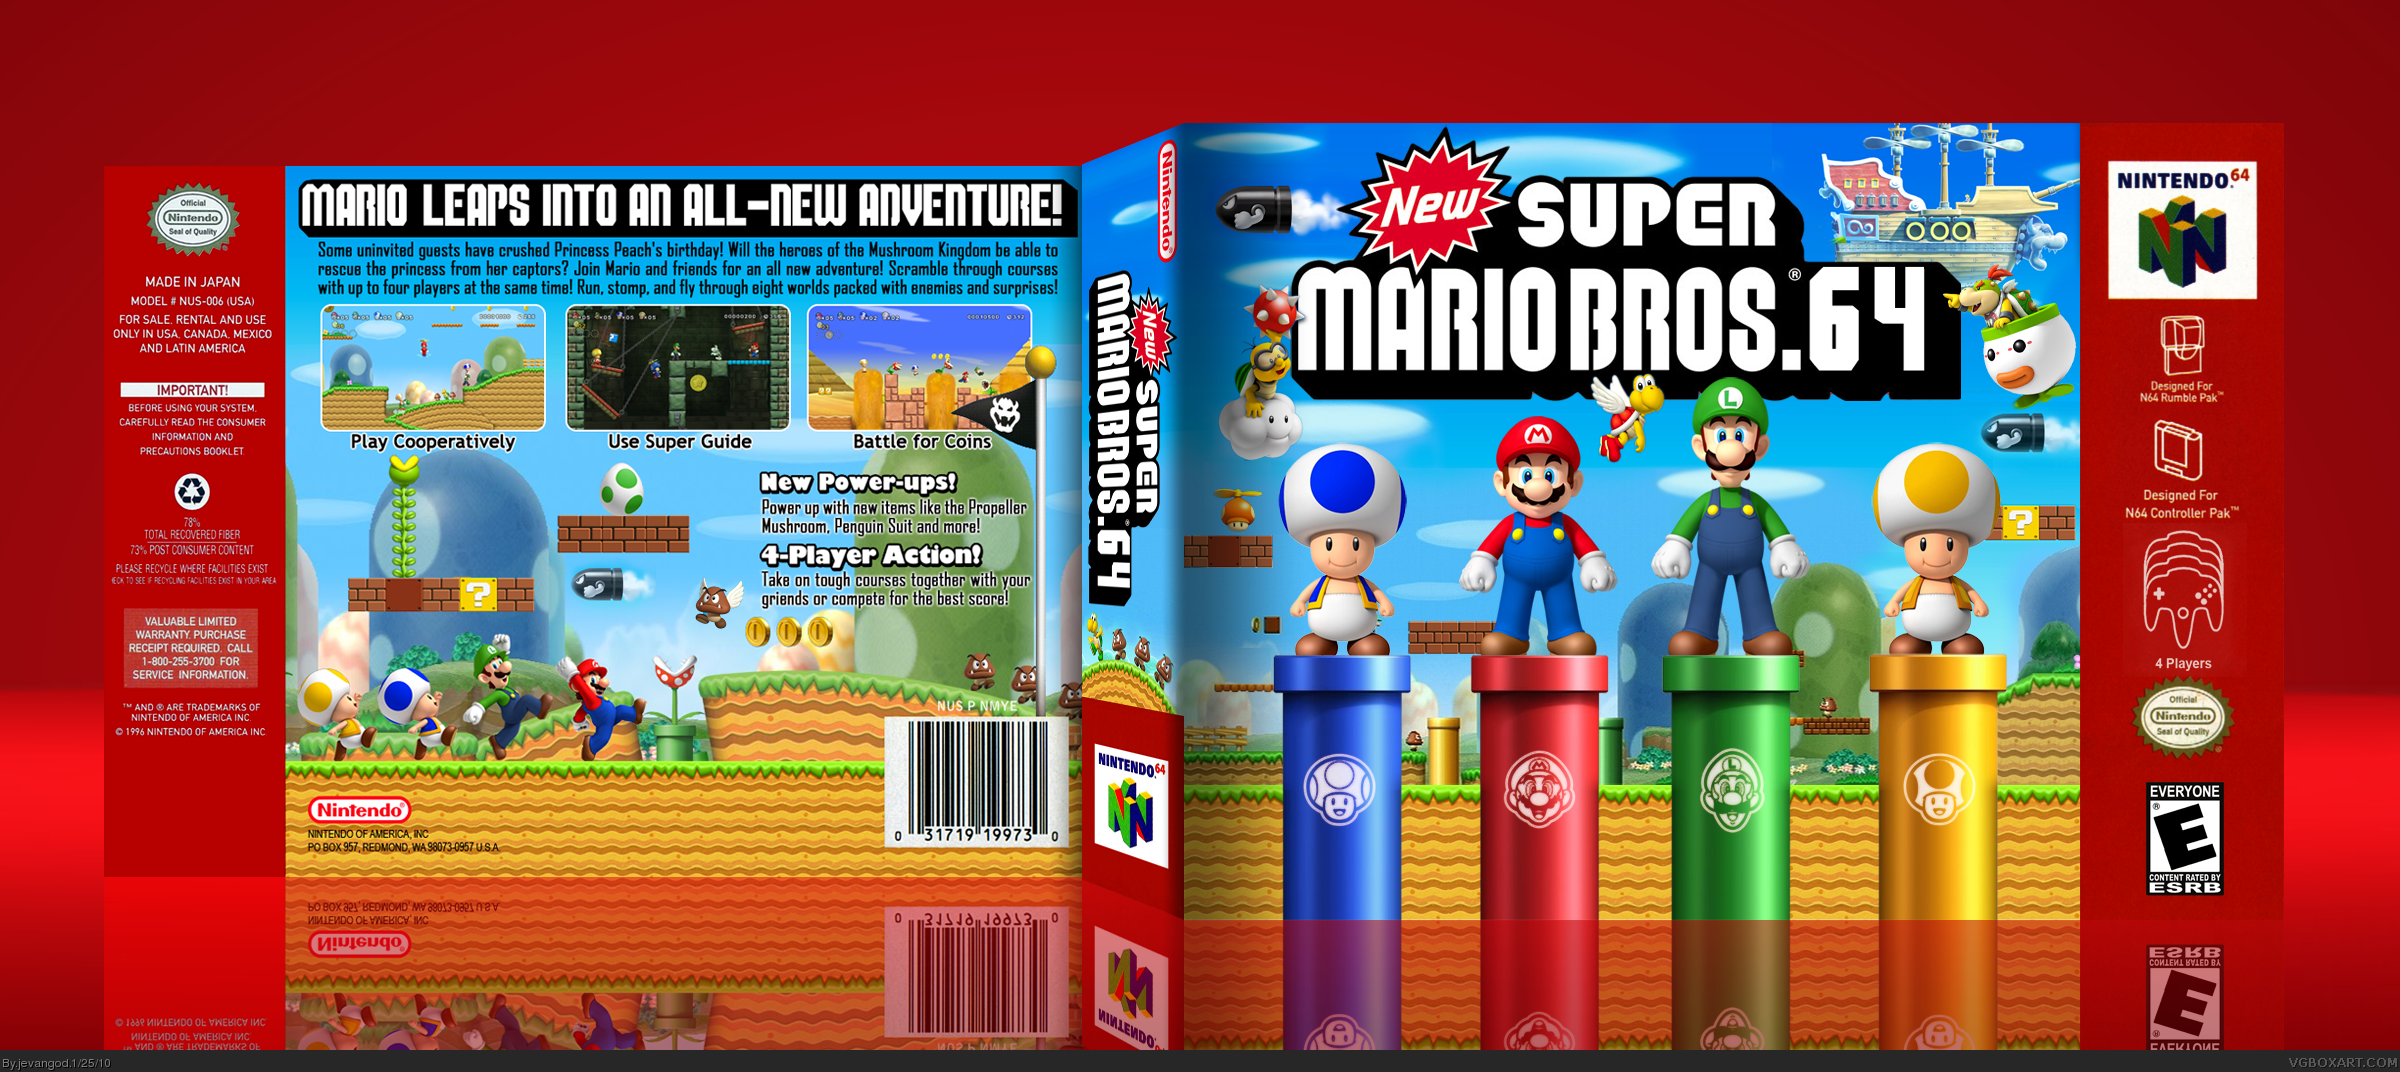 NEW Super Mario Bros. 64 box cover